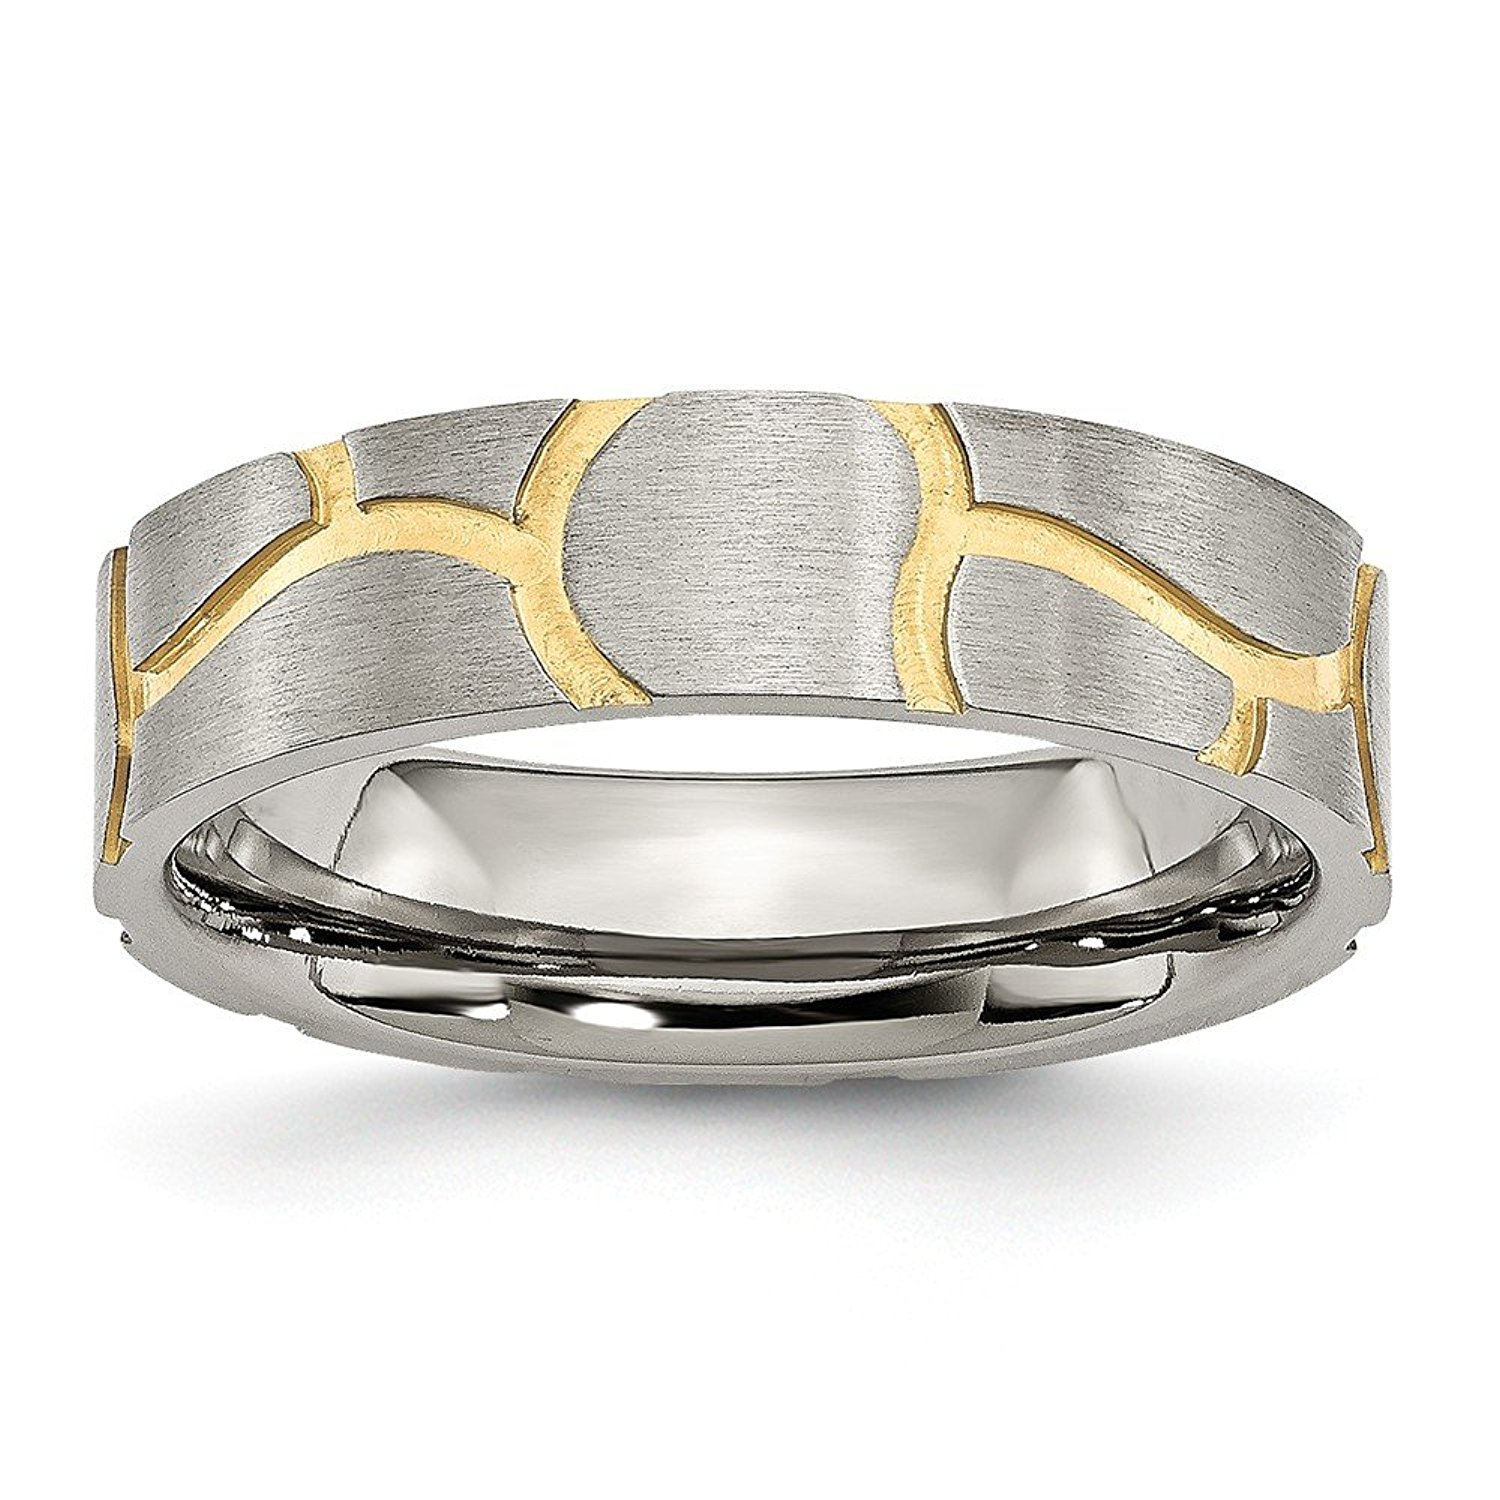 Top 10 Jewelry Gift Stainless Steel Grooved Yellow IP-plated Ladies 6mm Brushed Band